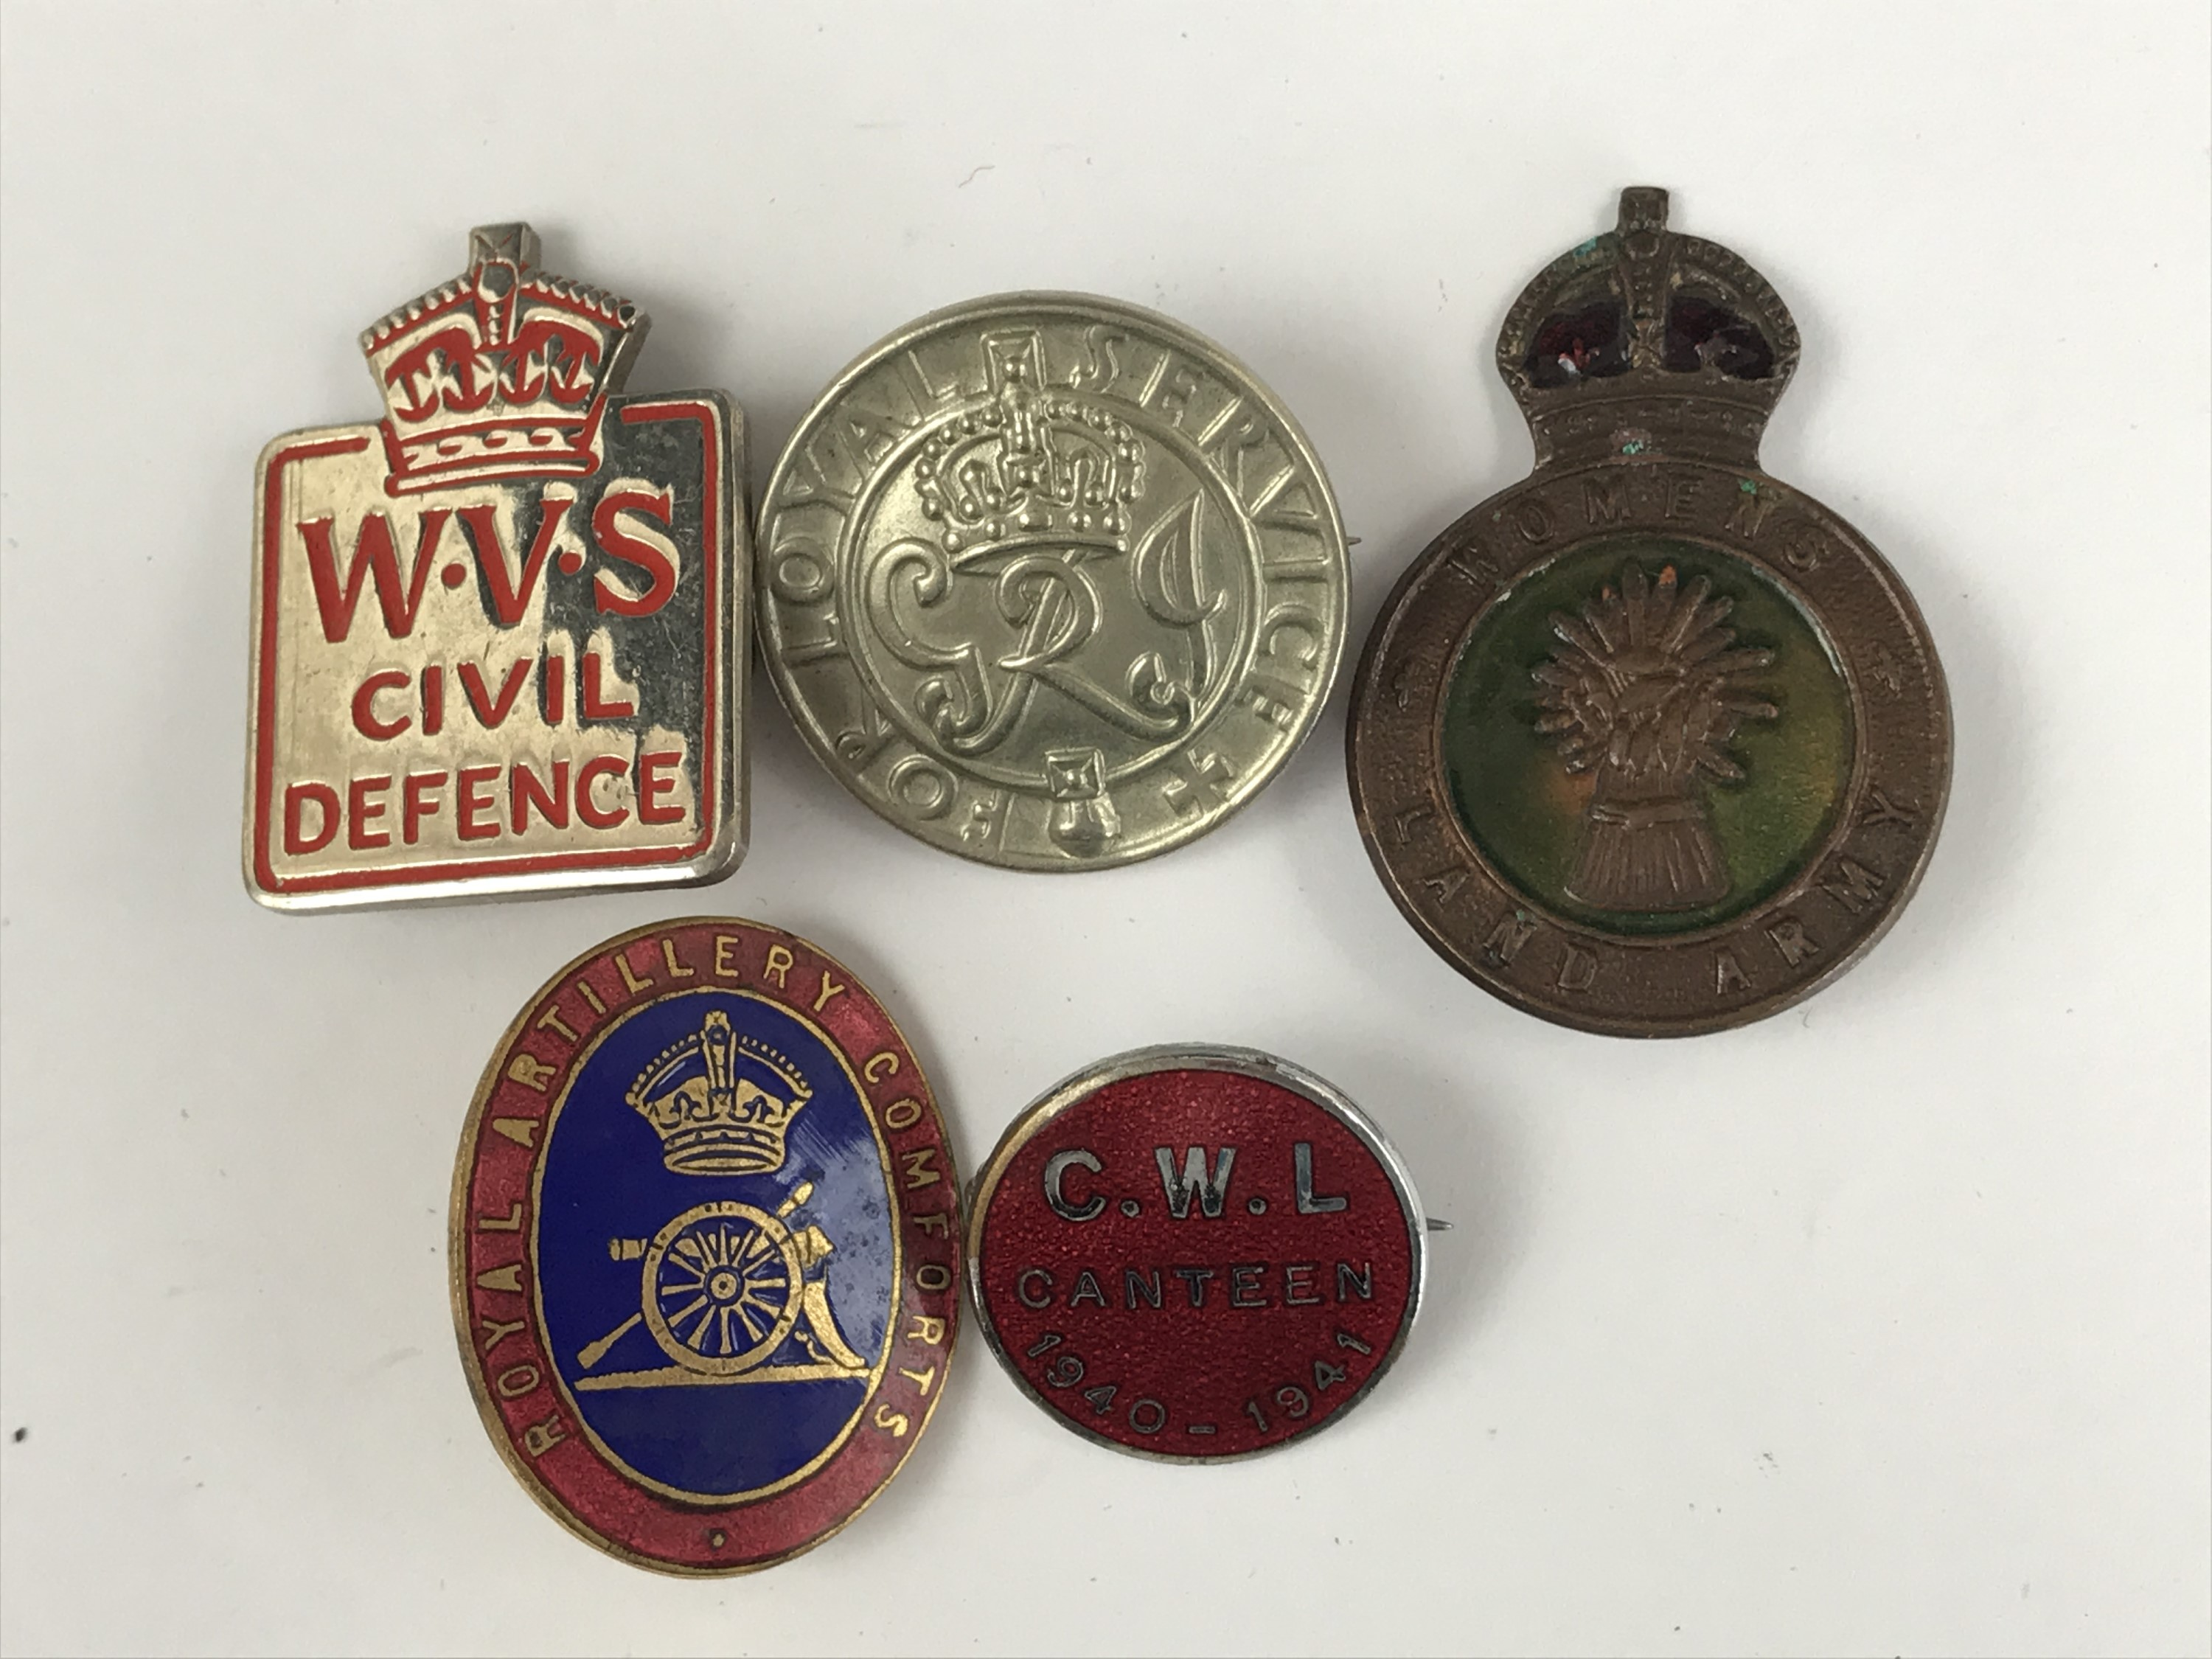 Lot 50 - A group of Second World War lapel badges including Catholic Women's League 1940-1941 Canteen and